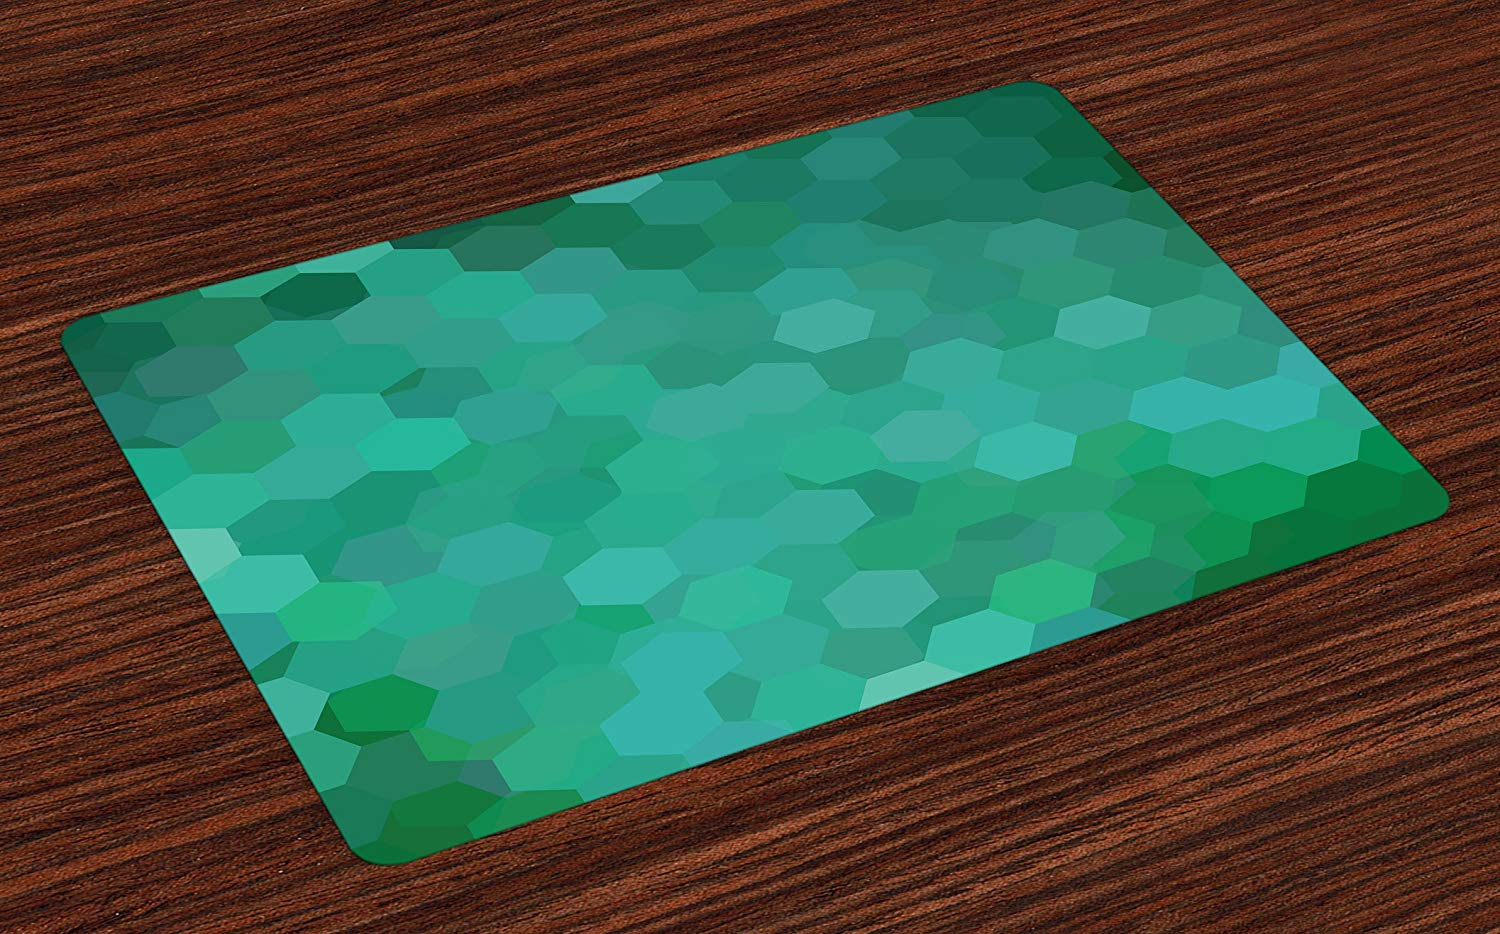 lunarable jade green place mats set hexagonal table accent placemat mosaic arrangement grid style colored pattern washable fabric placemats for dining room kitchen ikea bathroom